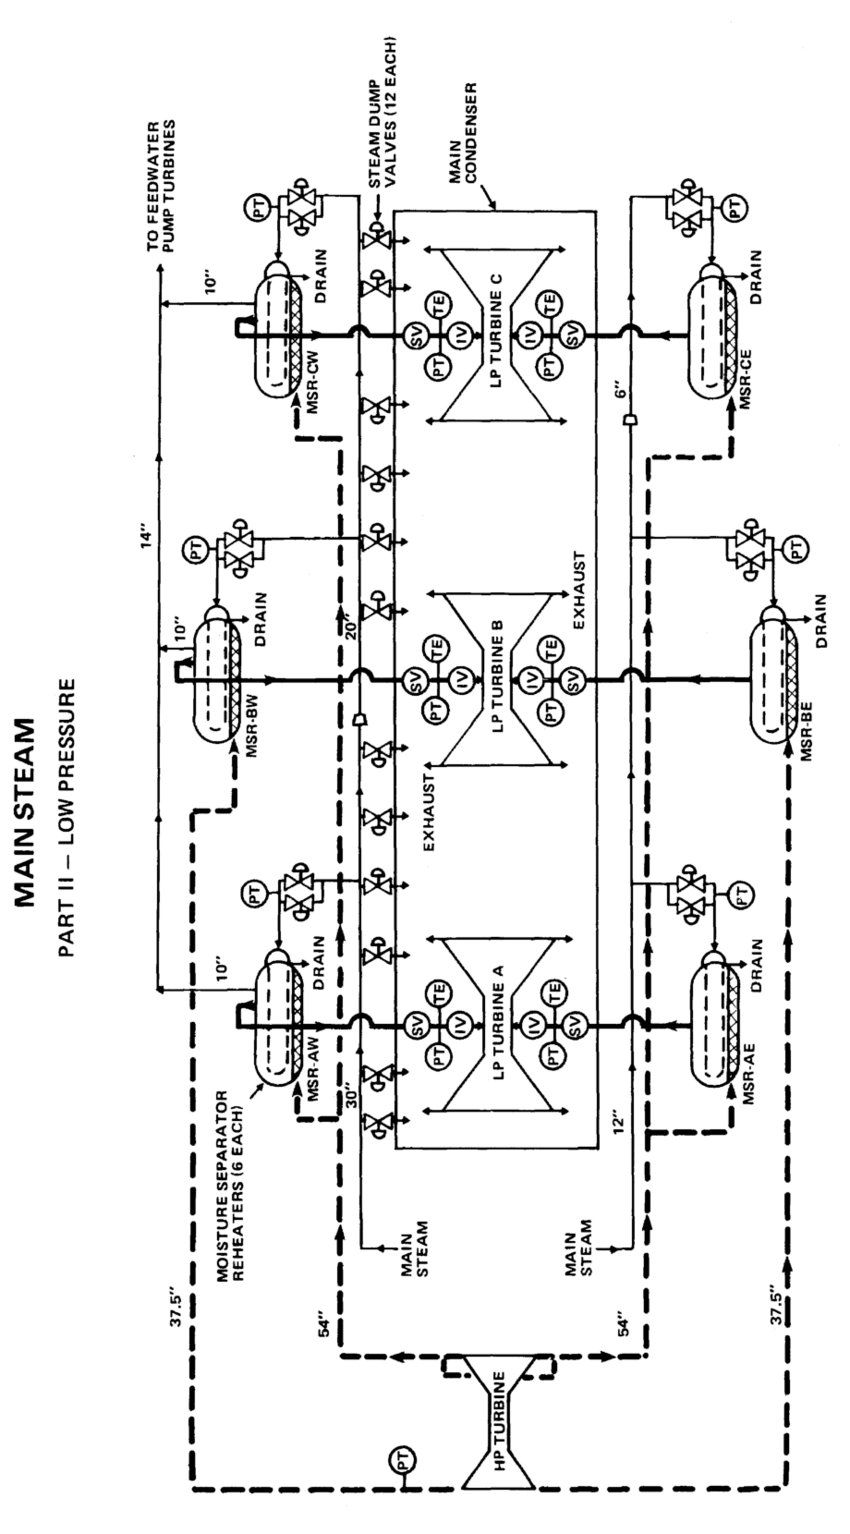 hight resolution of low pressure steam system for a typical 1000 mwe pressurized water nuclear power